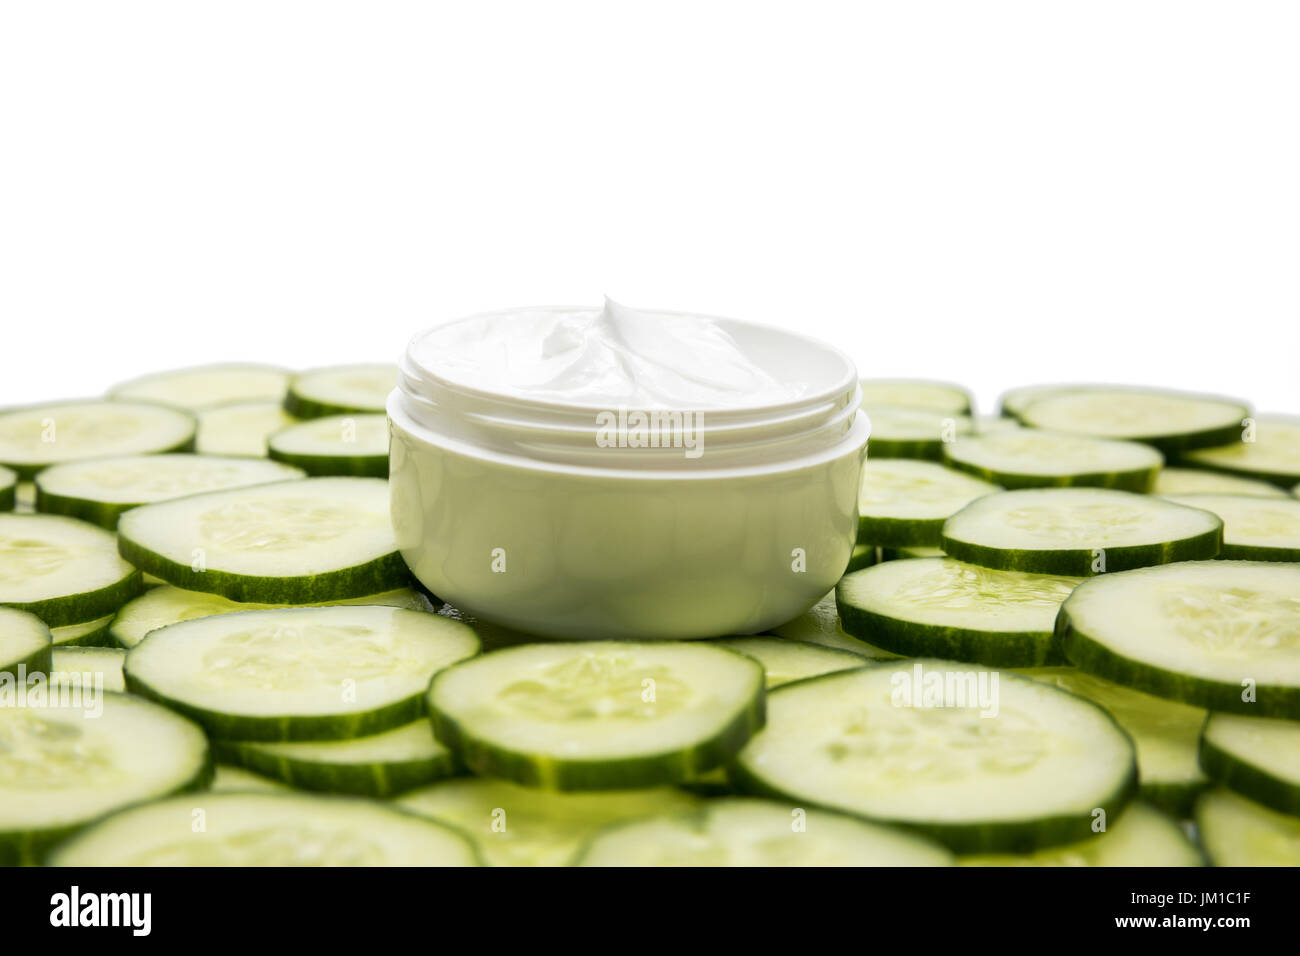 Close-up view of facial cream in container and cucumber slices isolated on white - Stock Image